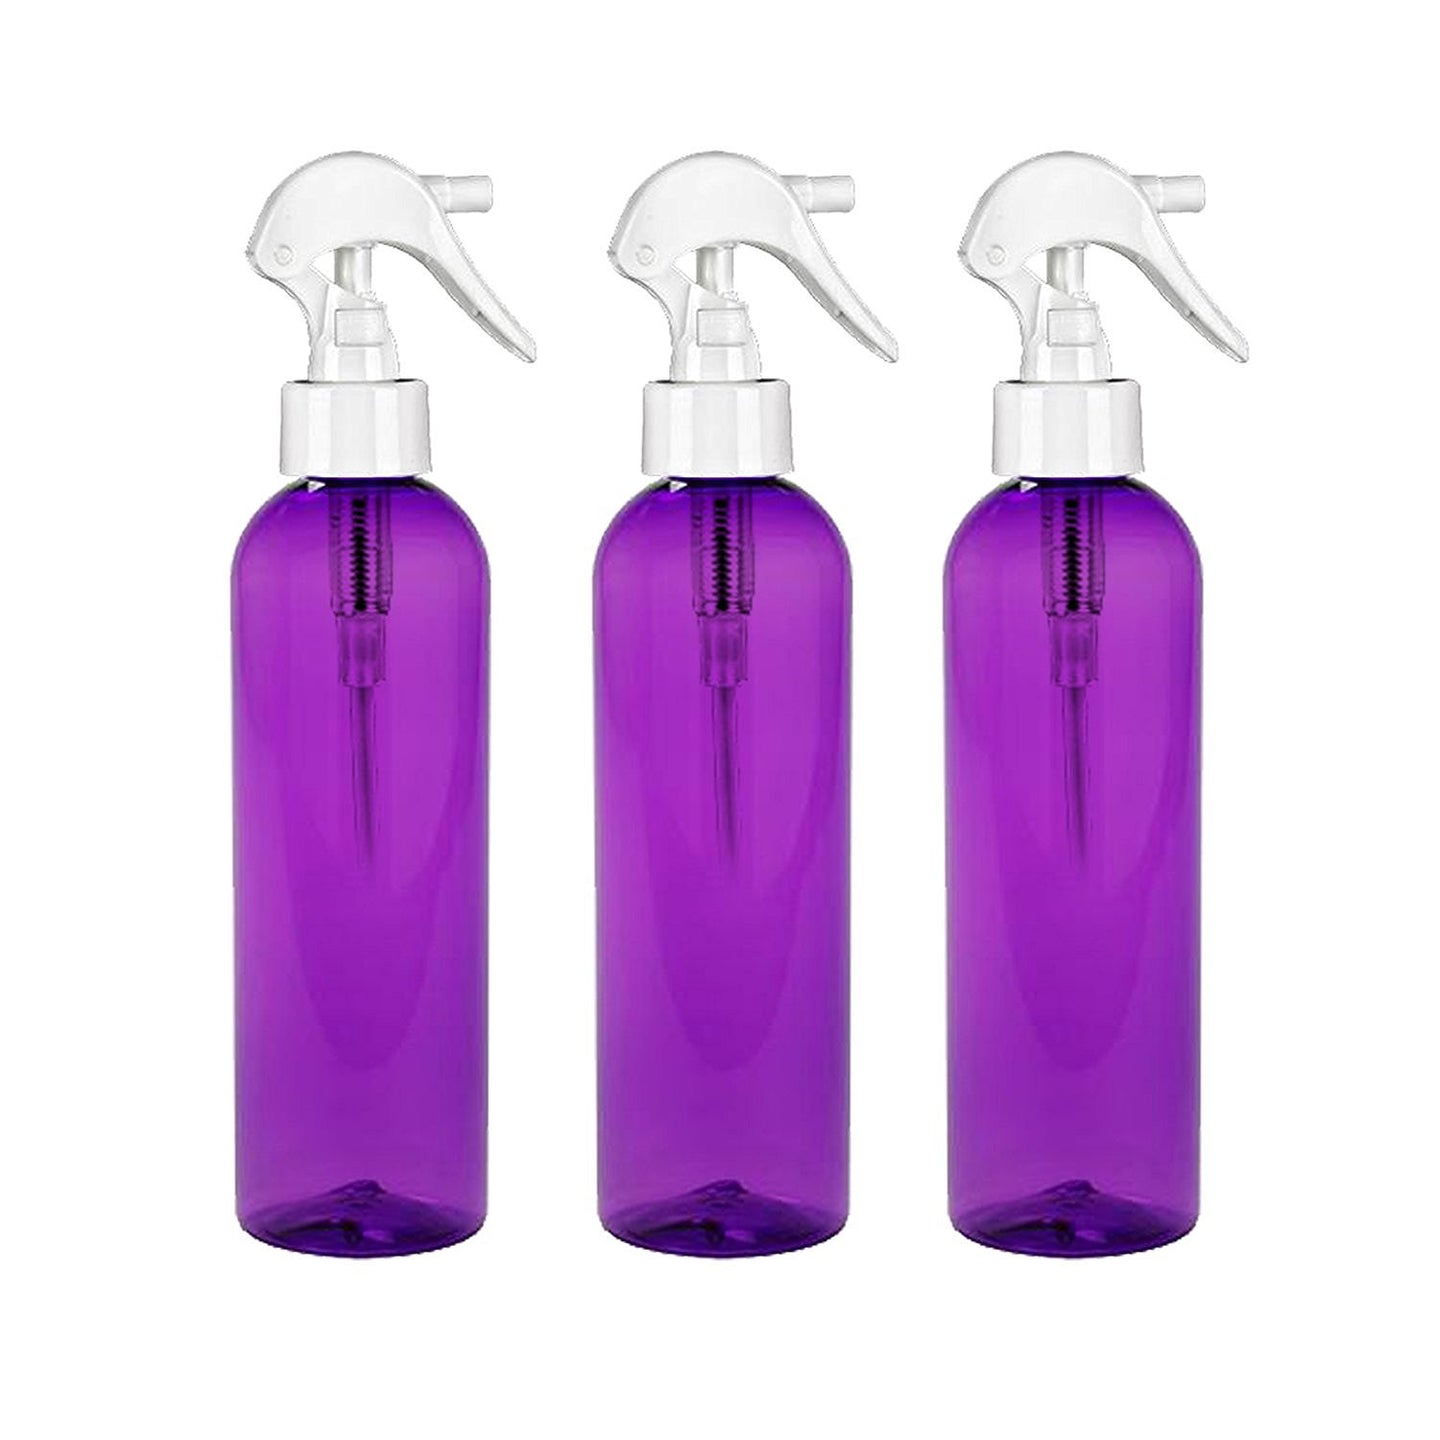 MoYo Natural Labs 8 oz Spray Bottles, Trigger Sprayer Empty Travel Containers, BPA Free for Essential Oils and Liquids/Cosmetics (Pack of 3, Purple)